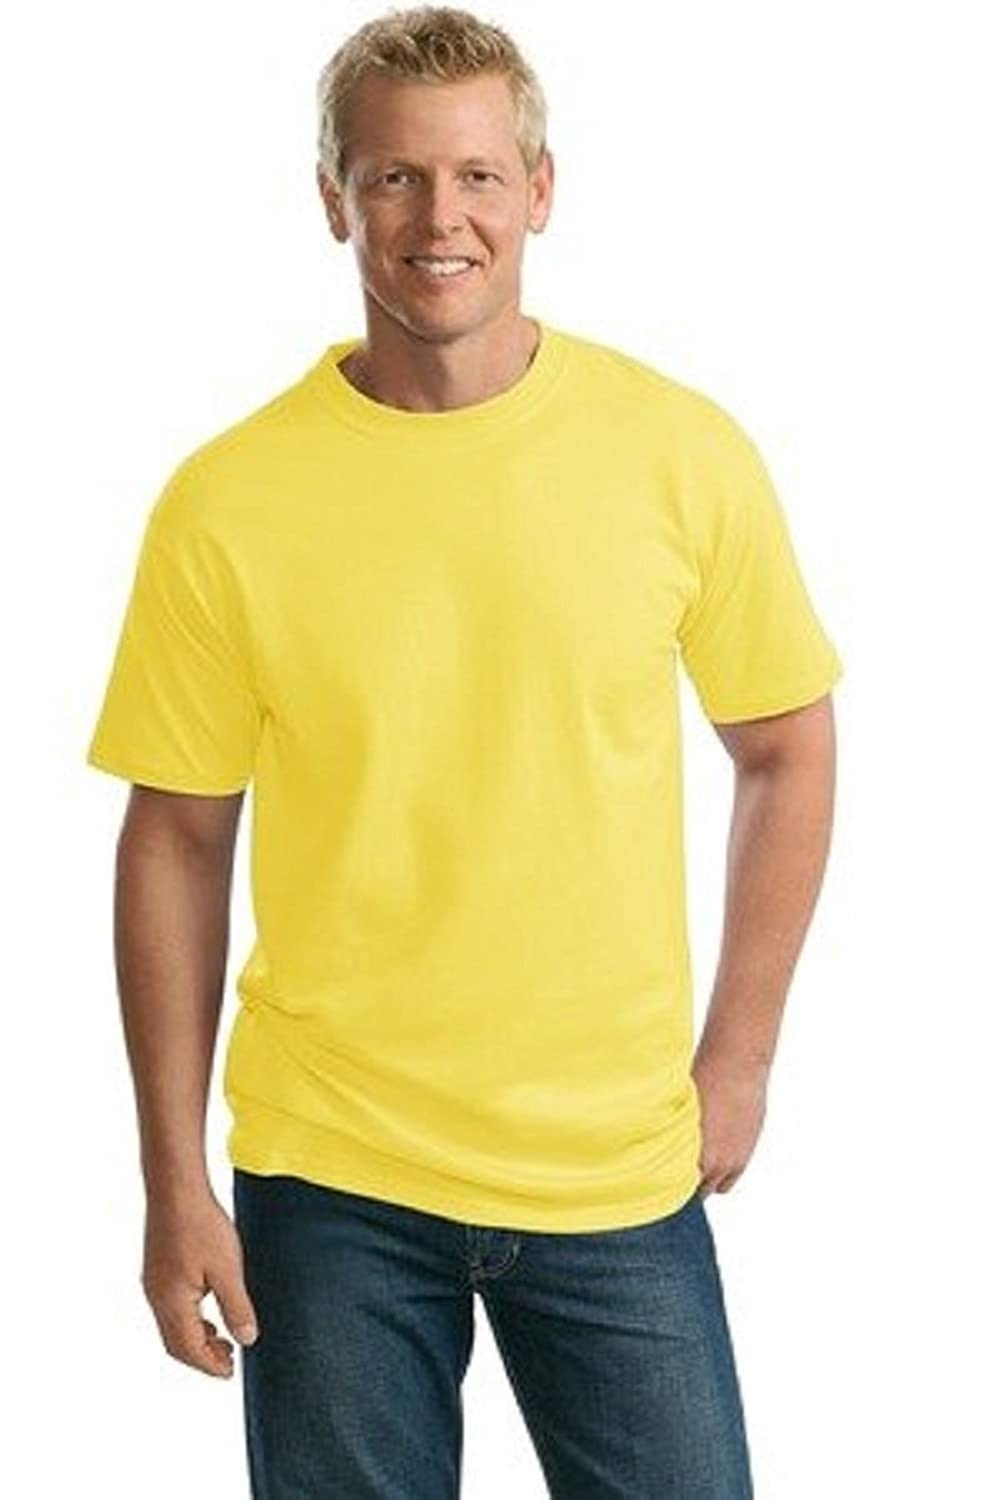 Port & Company Cotton T-Shirt (PC61T) Available in 12 Yellow PC61T XLT